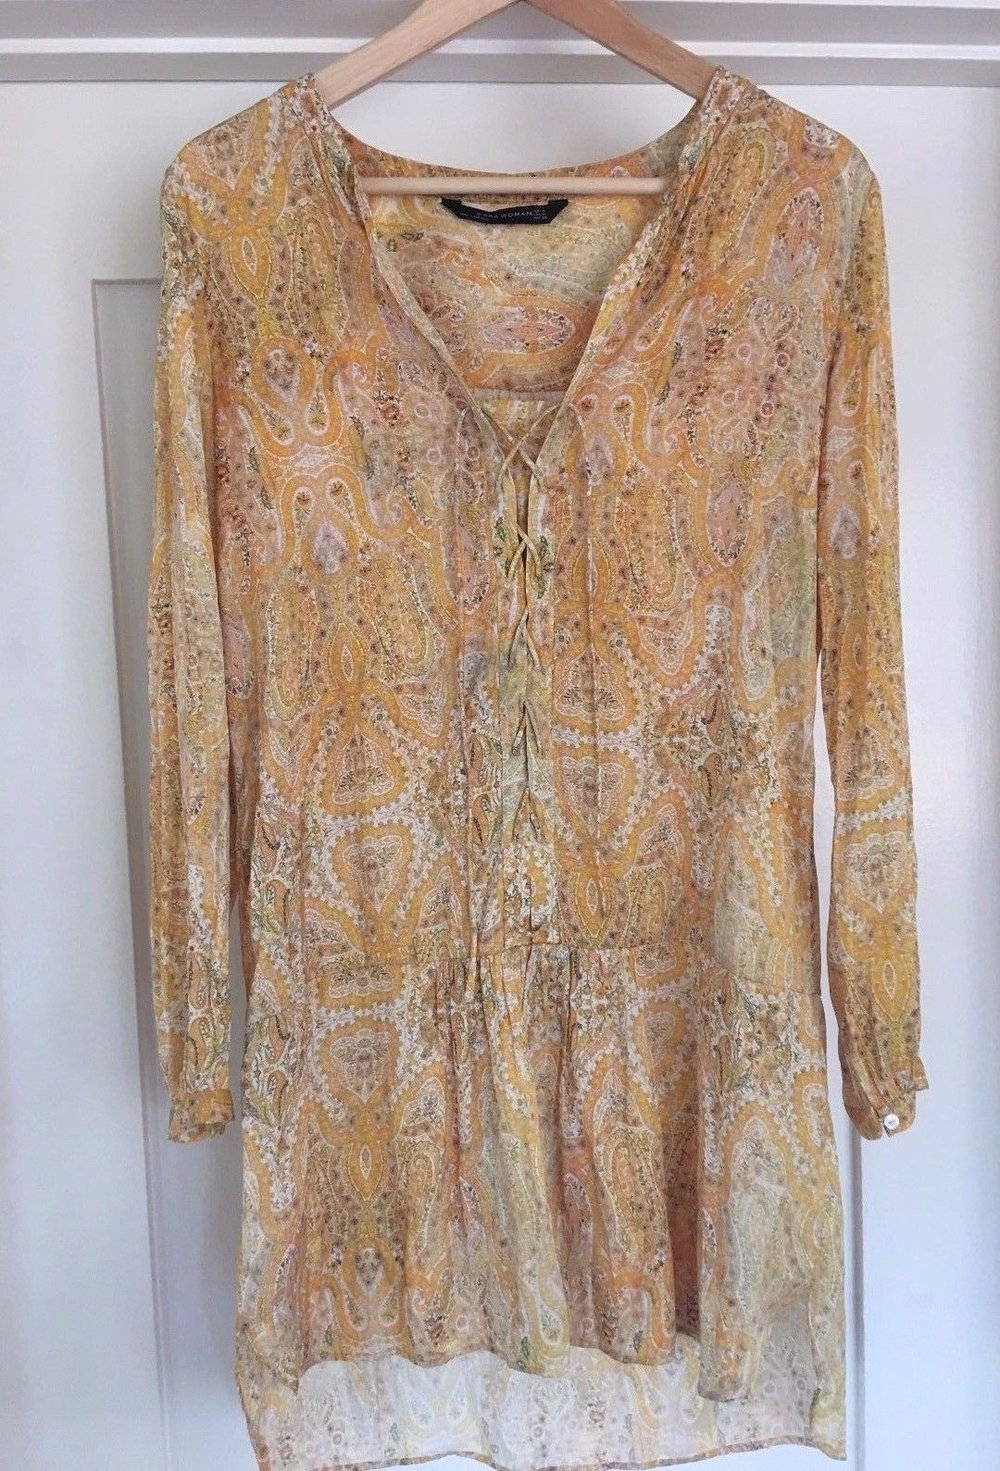 Zara-floral-paisley-dress-yellow-Size-M-boho.jpg